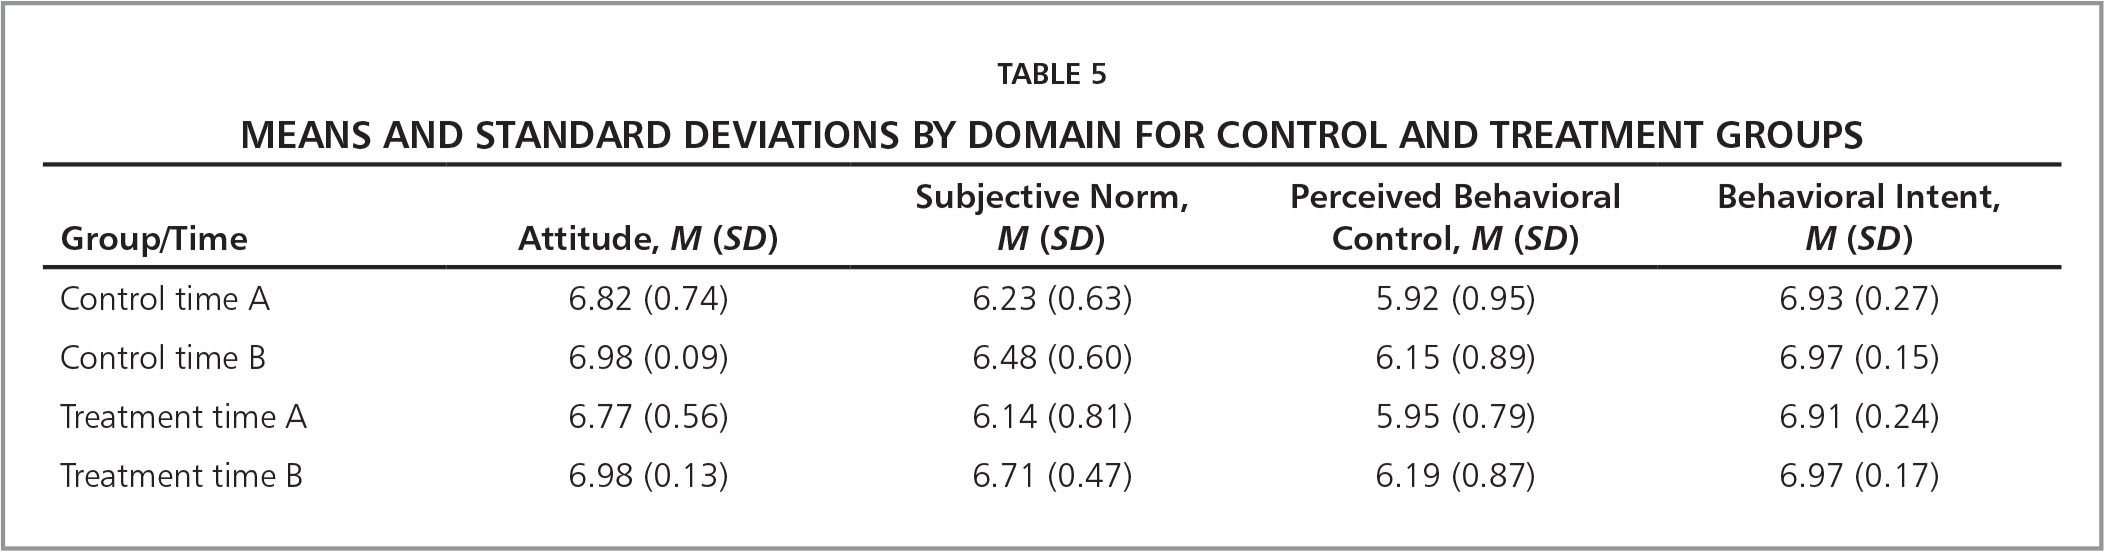 Means and Standard Deviations by Domain for Control and Treatment Groups